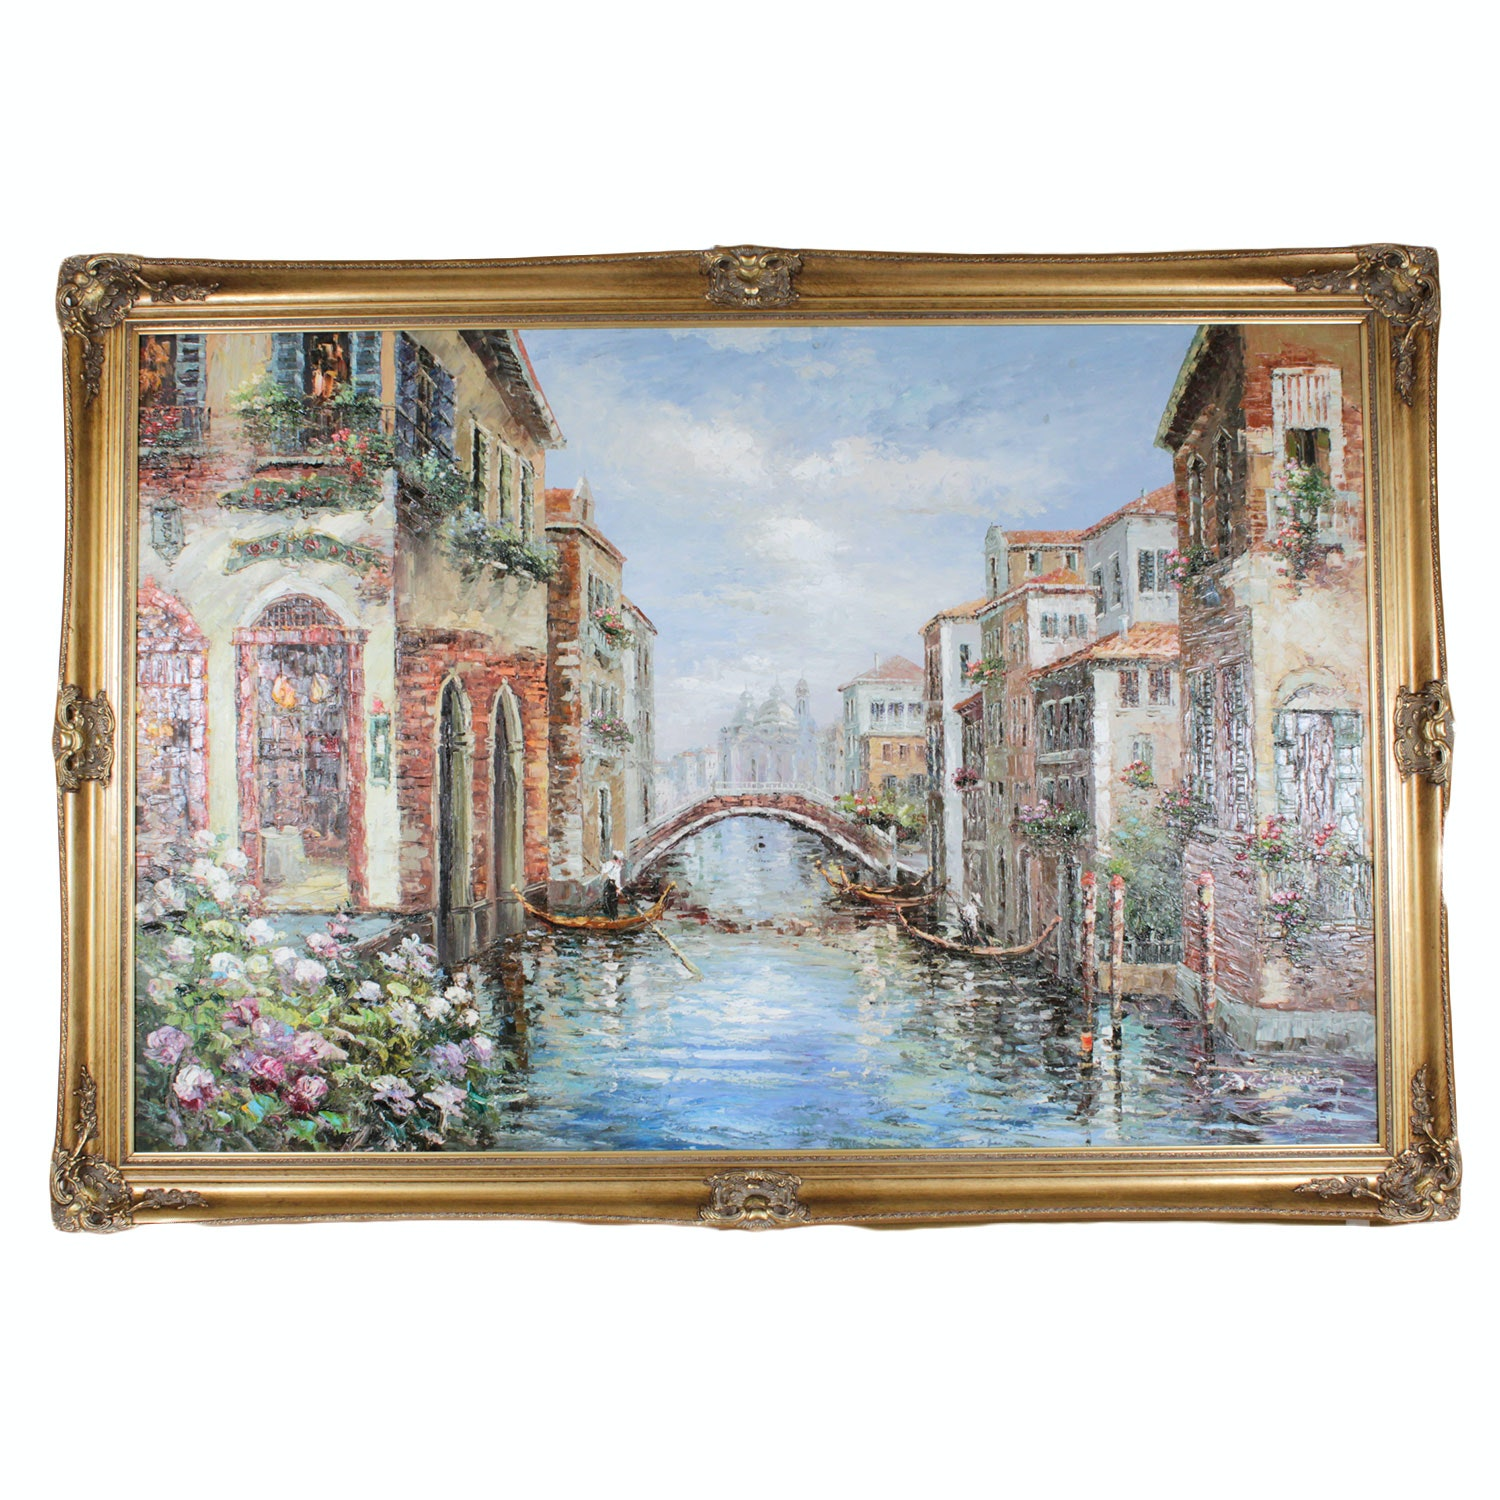 Large-Scale Signed Venetian Canal Painting